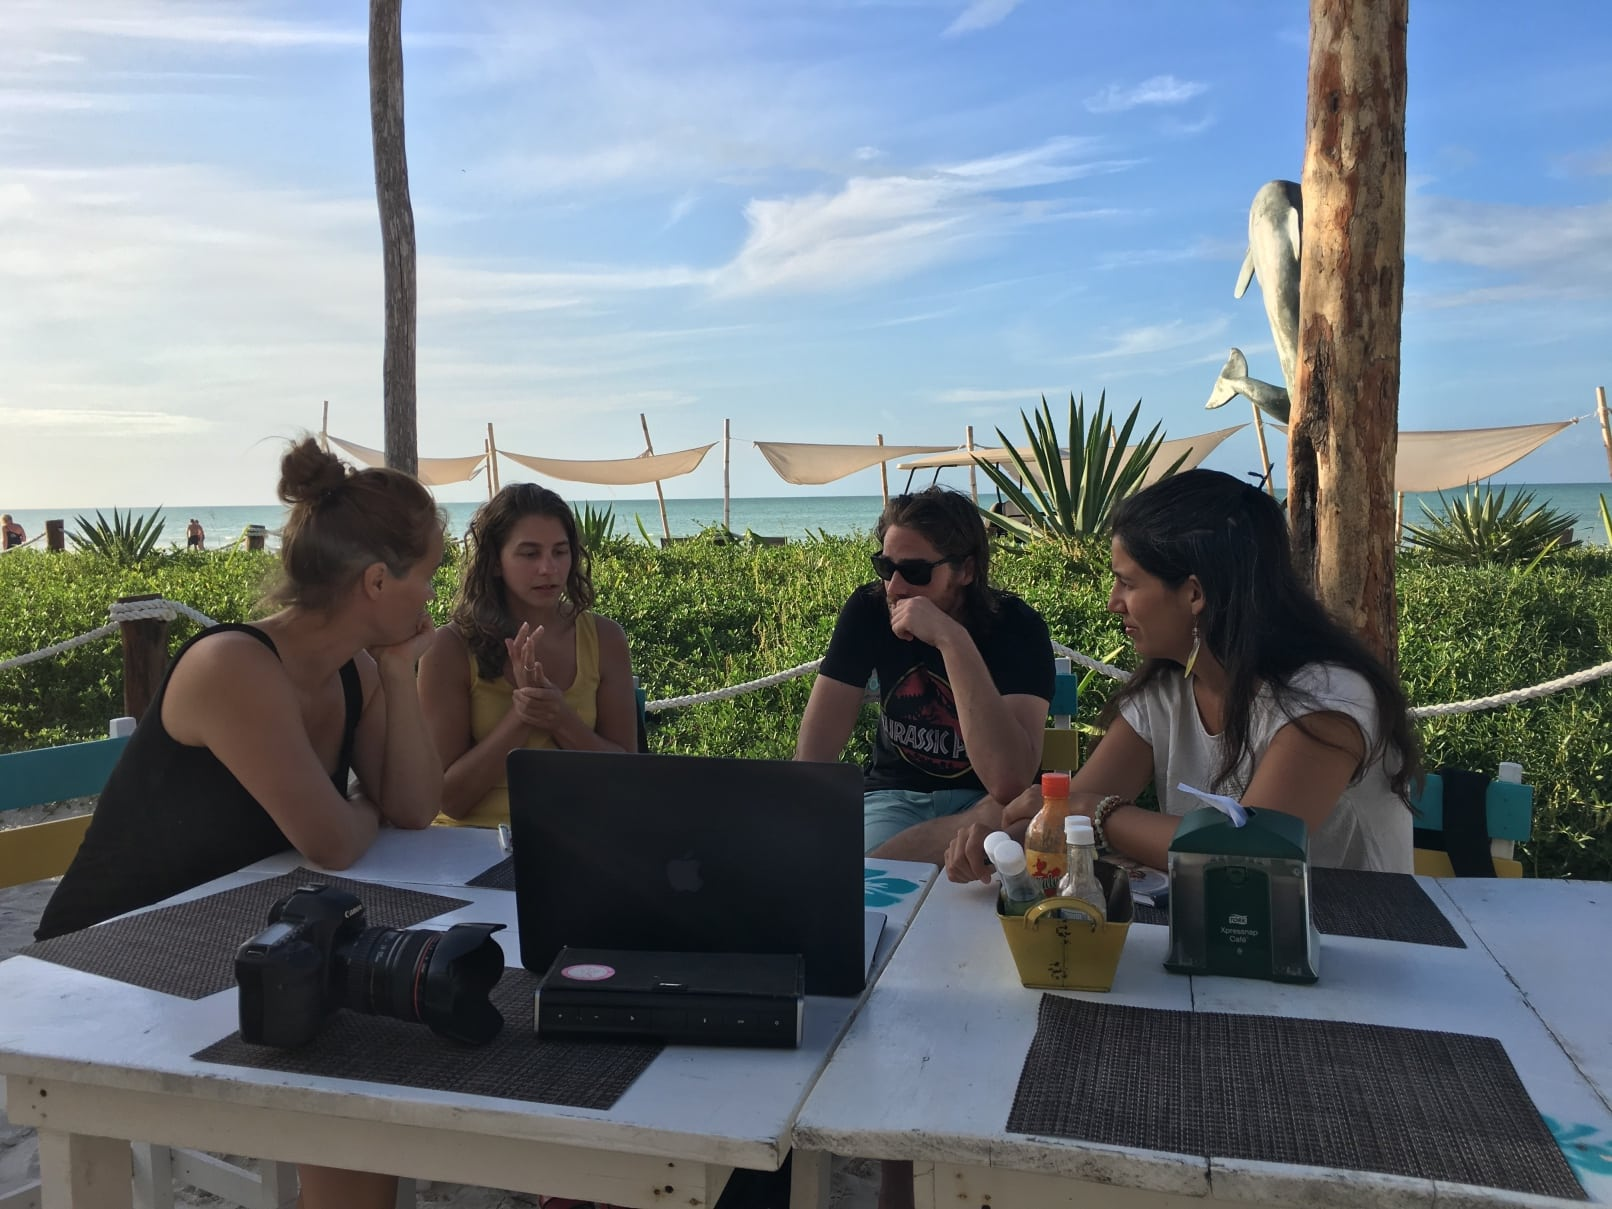 Business Bootcamp Training - Lifestyle Design Edition - Mexico November 2016